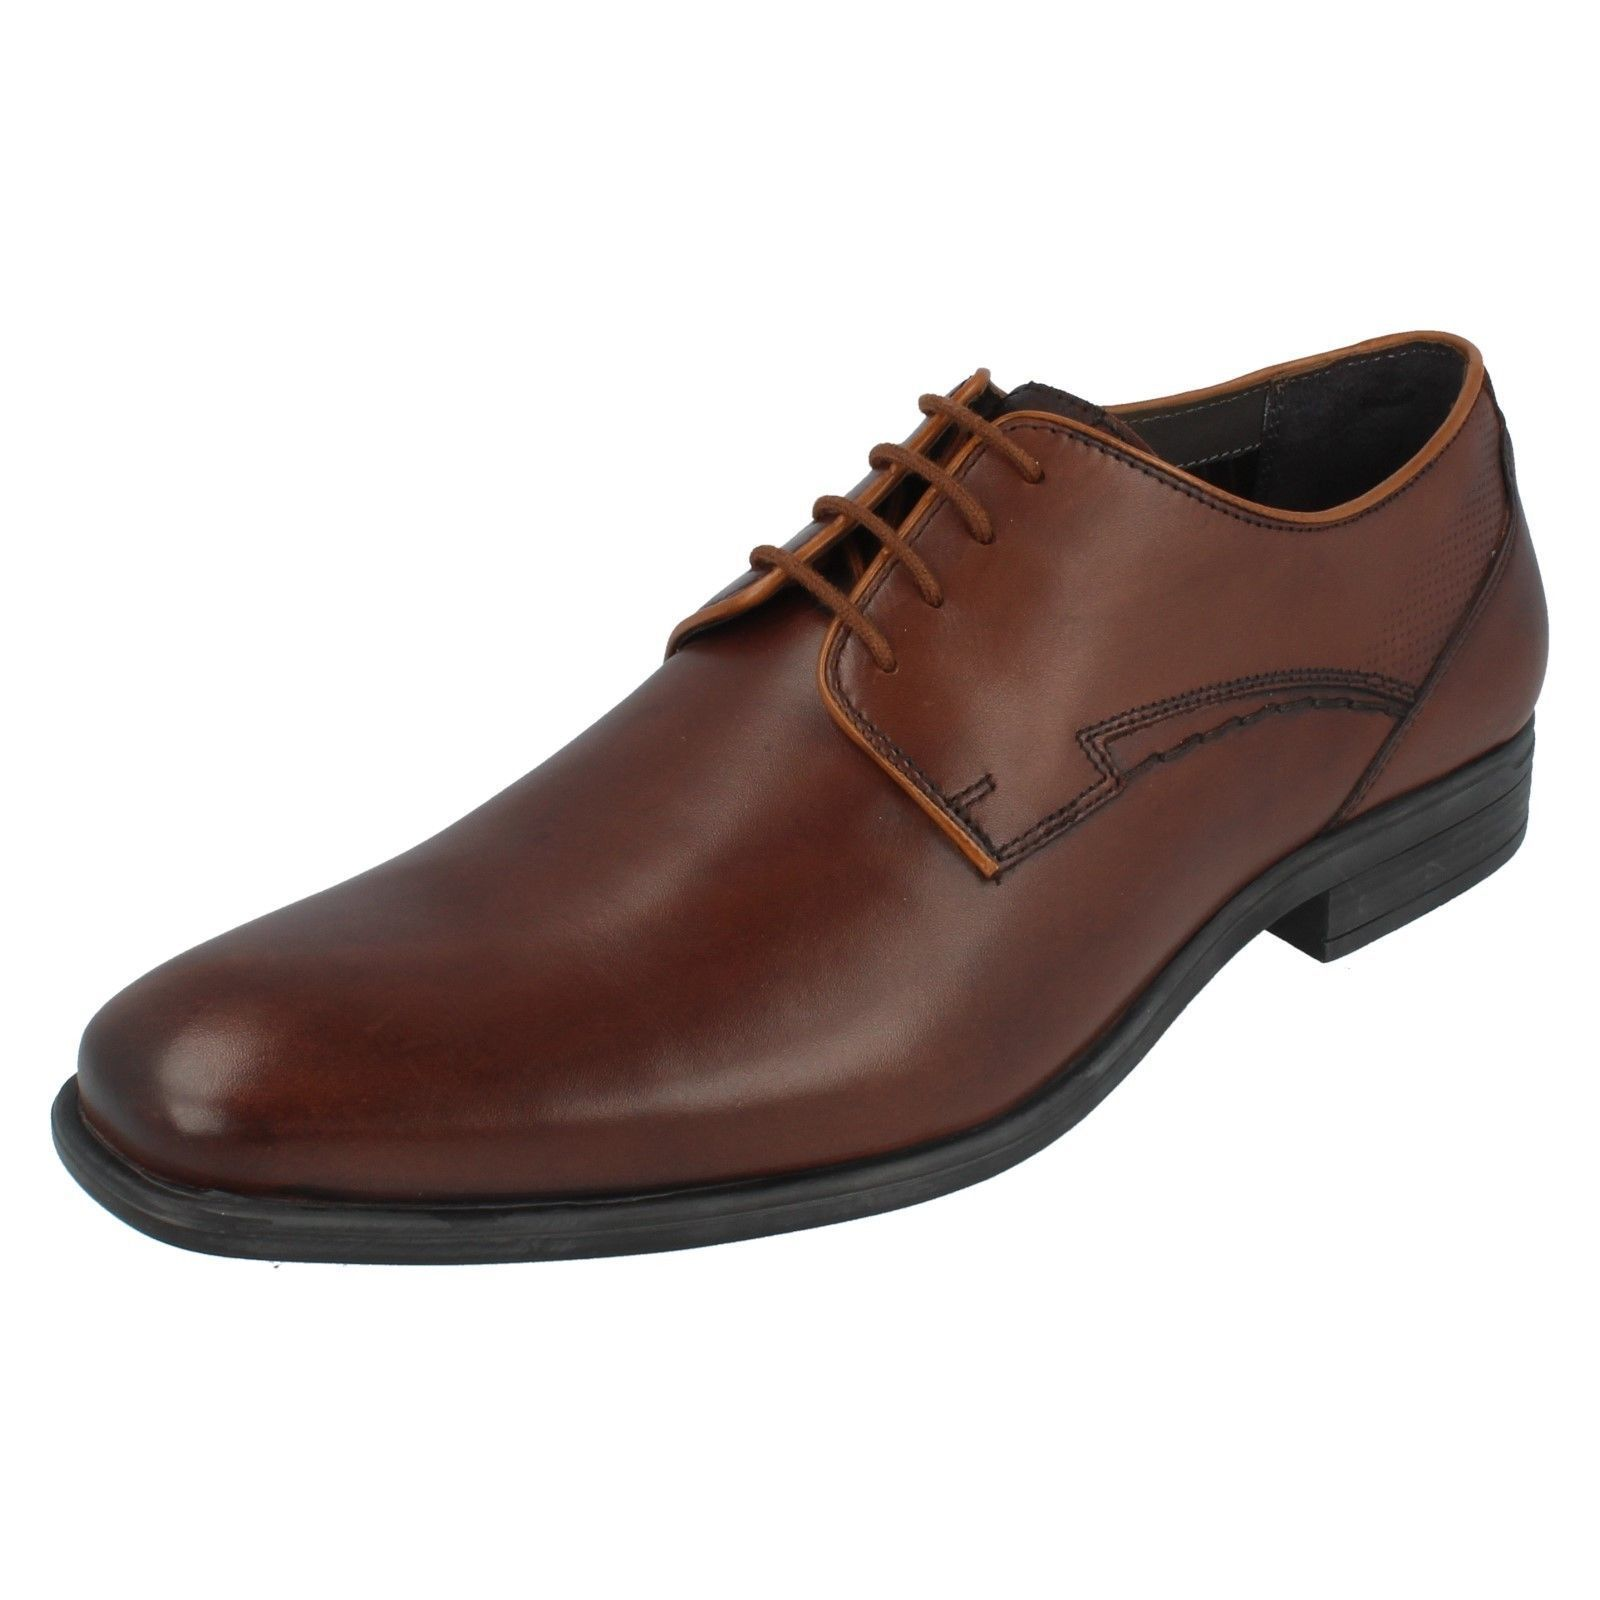 herren braun Leather Lace Up BounceTechnology Hush Puppies schuhe Kane Maddow